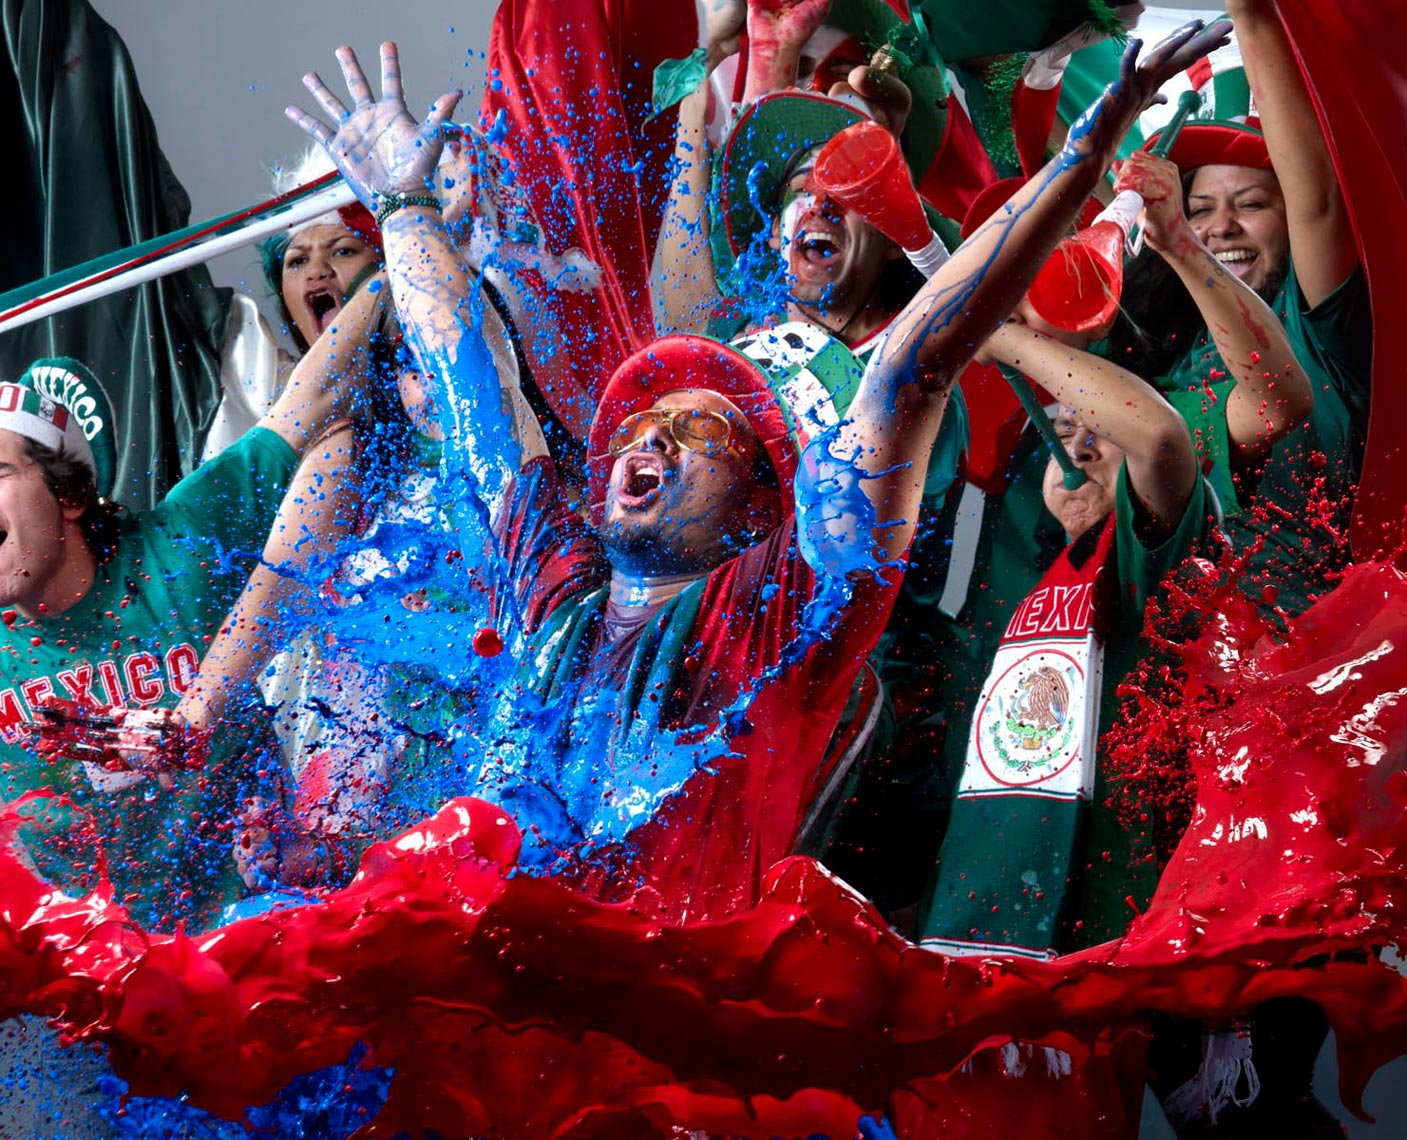 Mexican Futbol fans EA Sports FIFA world cup 2010 photo by Monte Isom